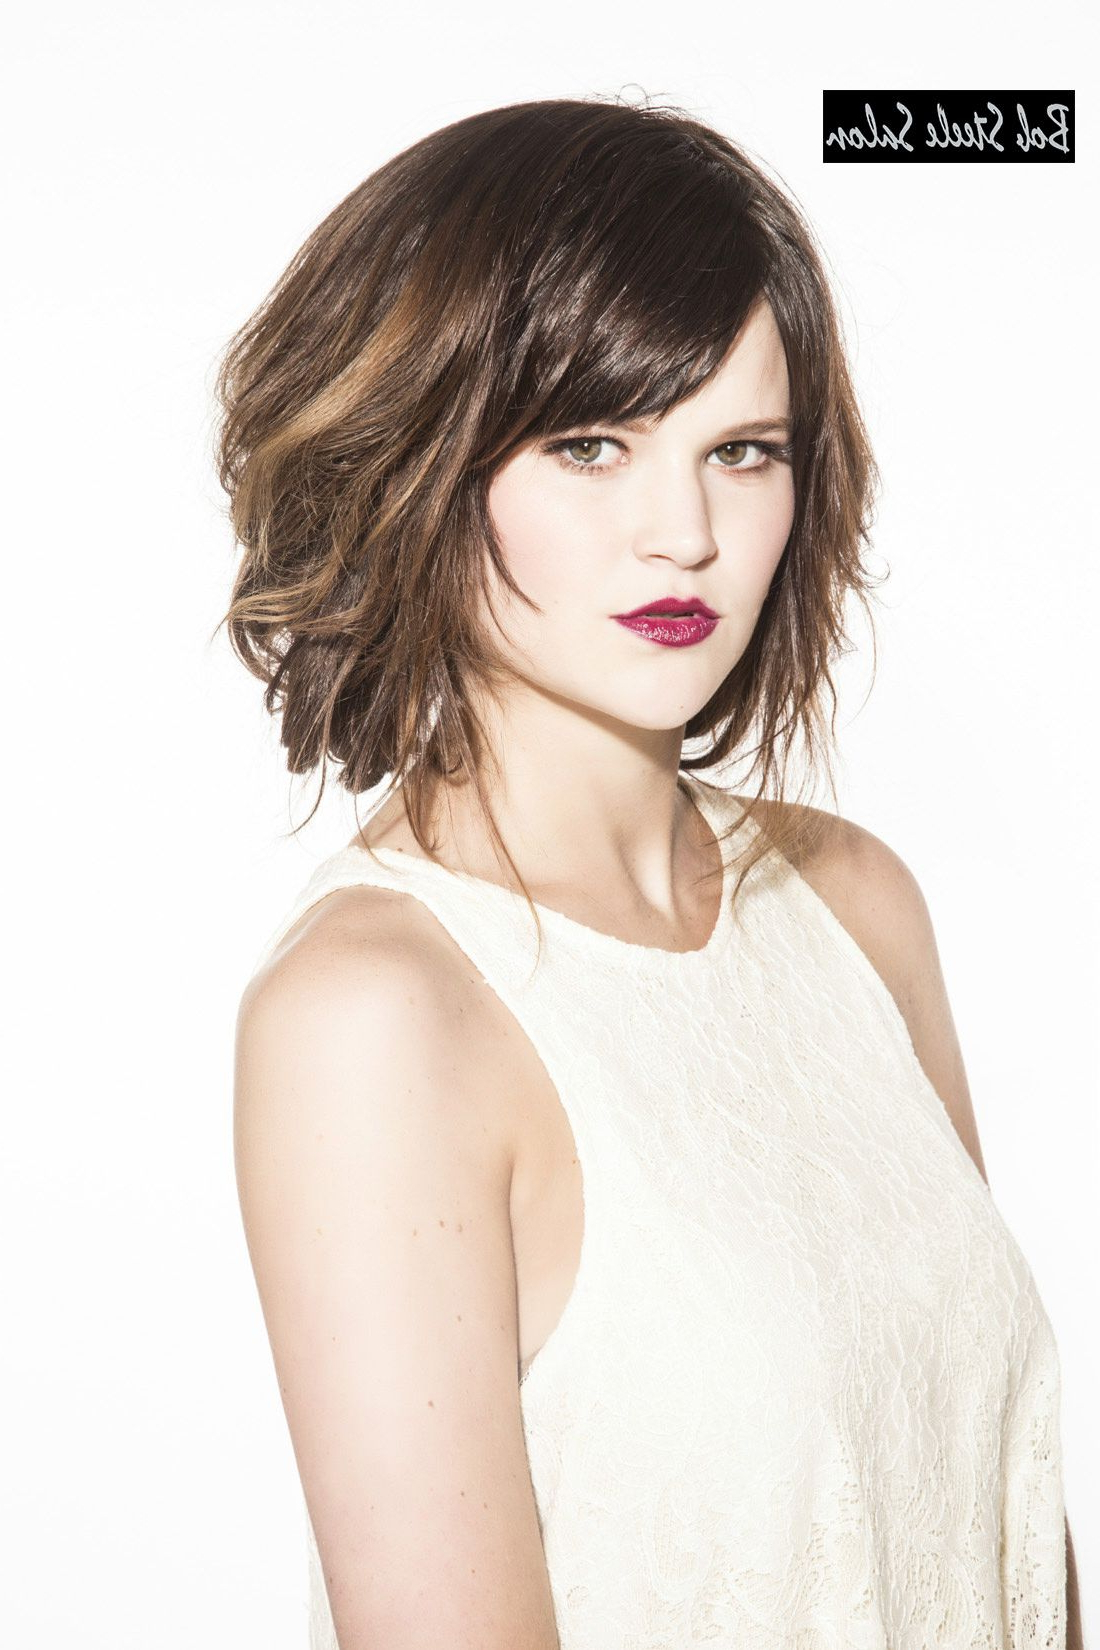 34 Greatest Short Haircuts And Hairstyles For Thick Hair For 2018 With Regard To Short To Medium Hairstyles For Thick Hair (View 15 of 25)